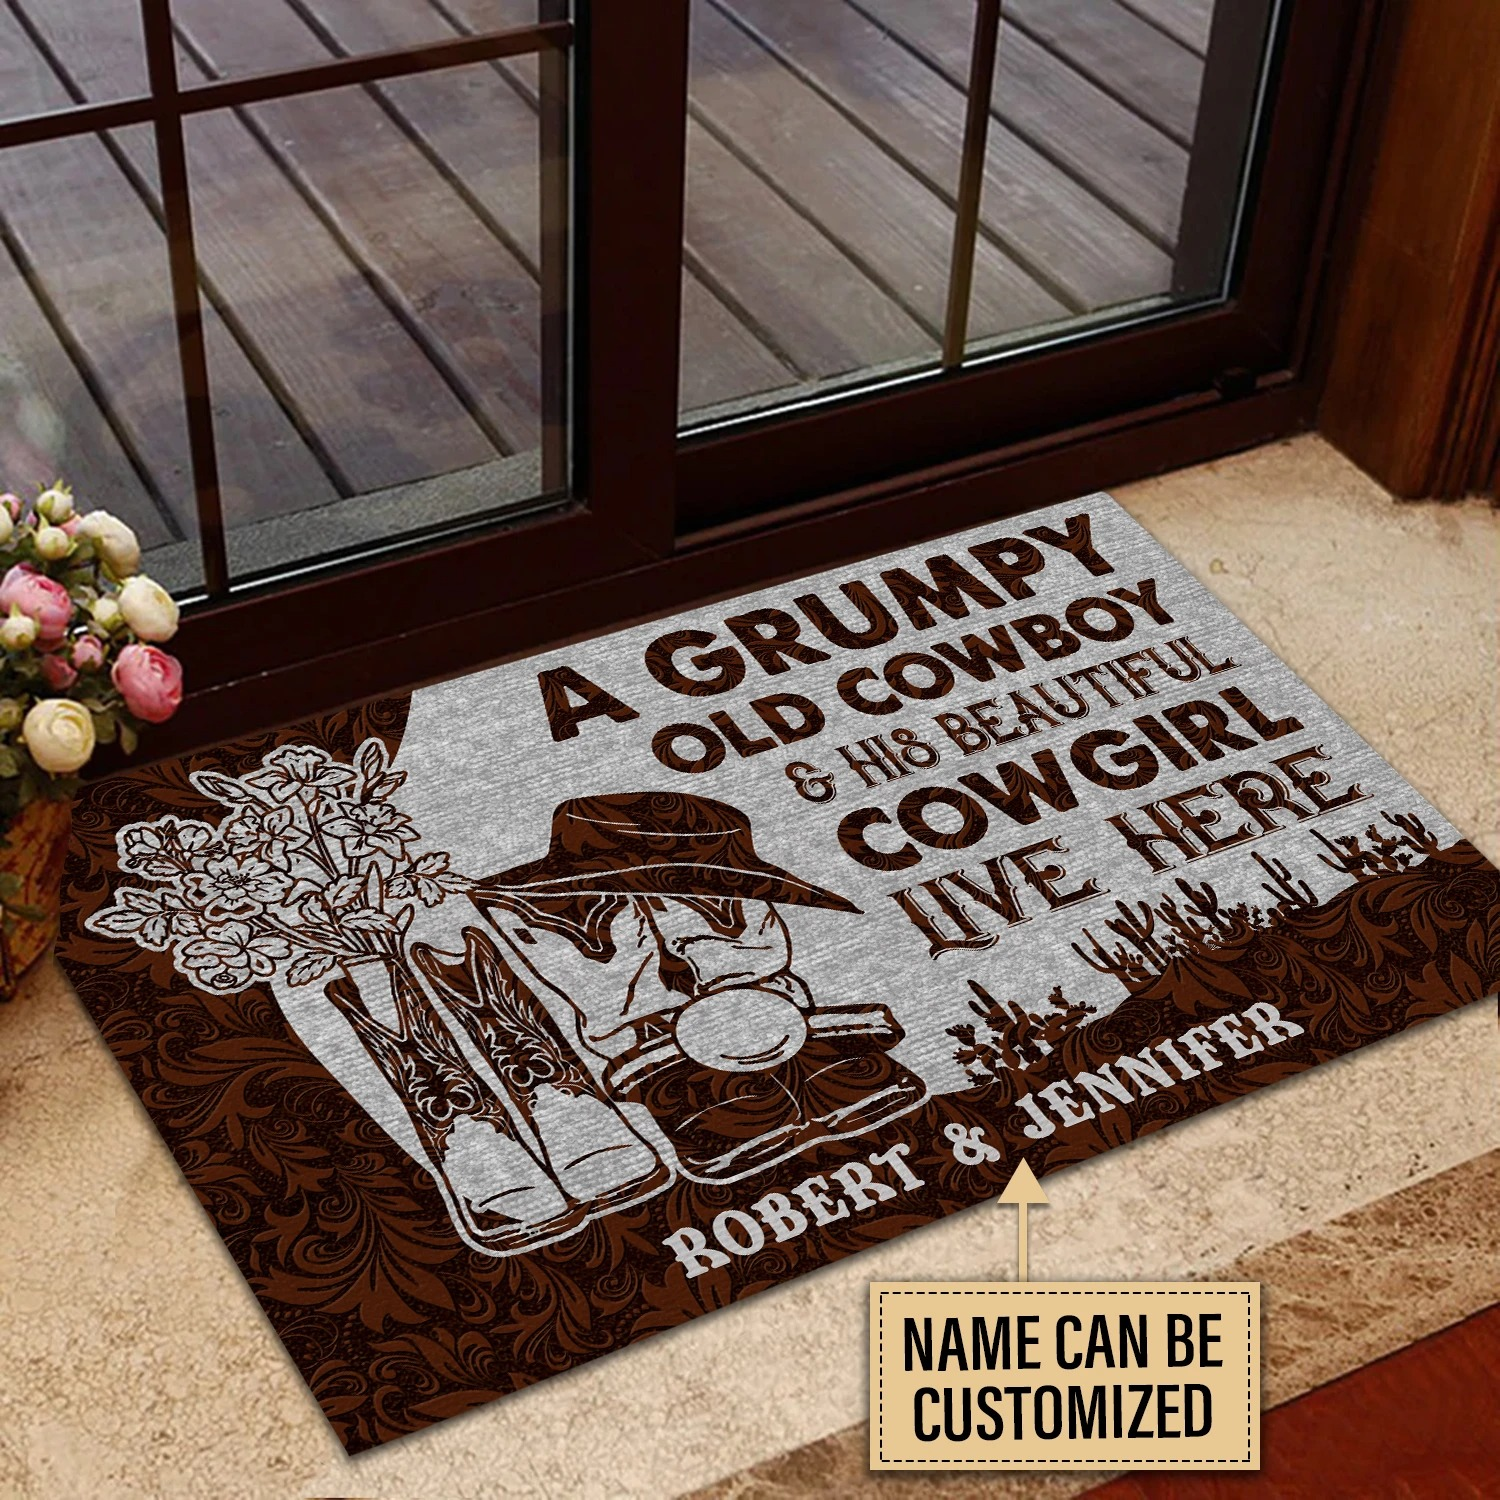 A grumpy old cowboy and his beautiful cowgirl live here custom name doormat3